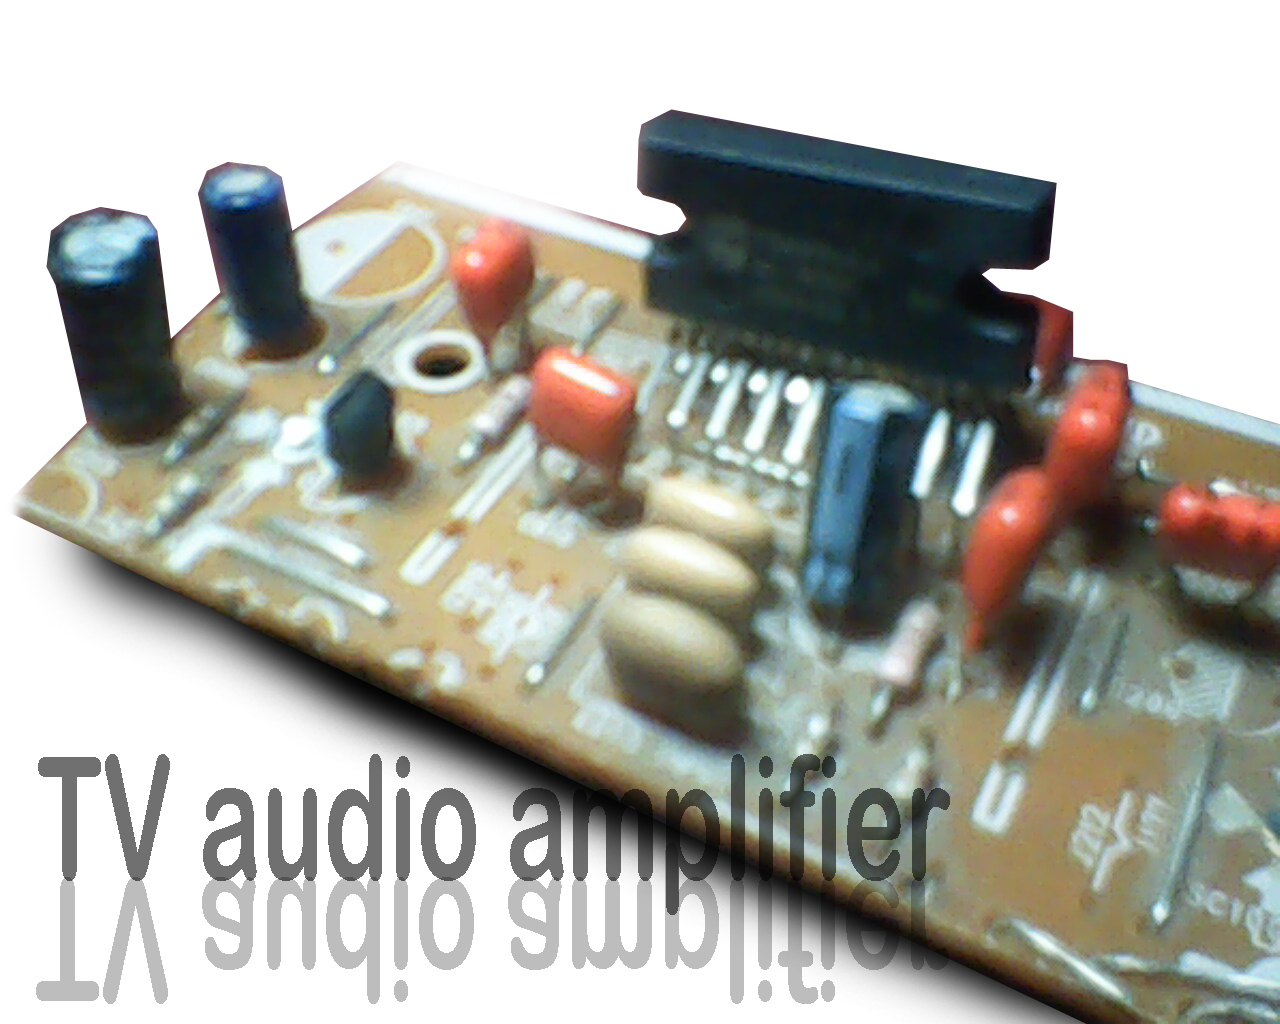 Power Amplifier Compatible With Tv Audio Subwoofer Bass Gain Control Circuit Diagram Amplifiercircuit In This